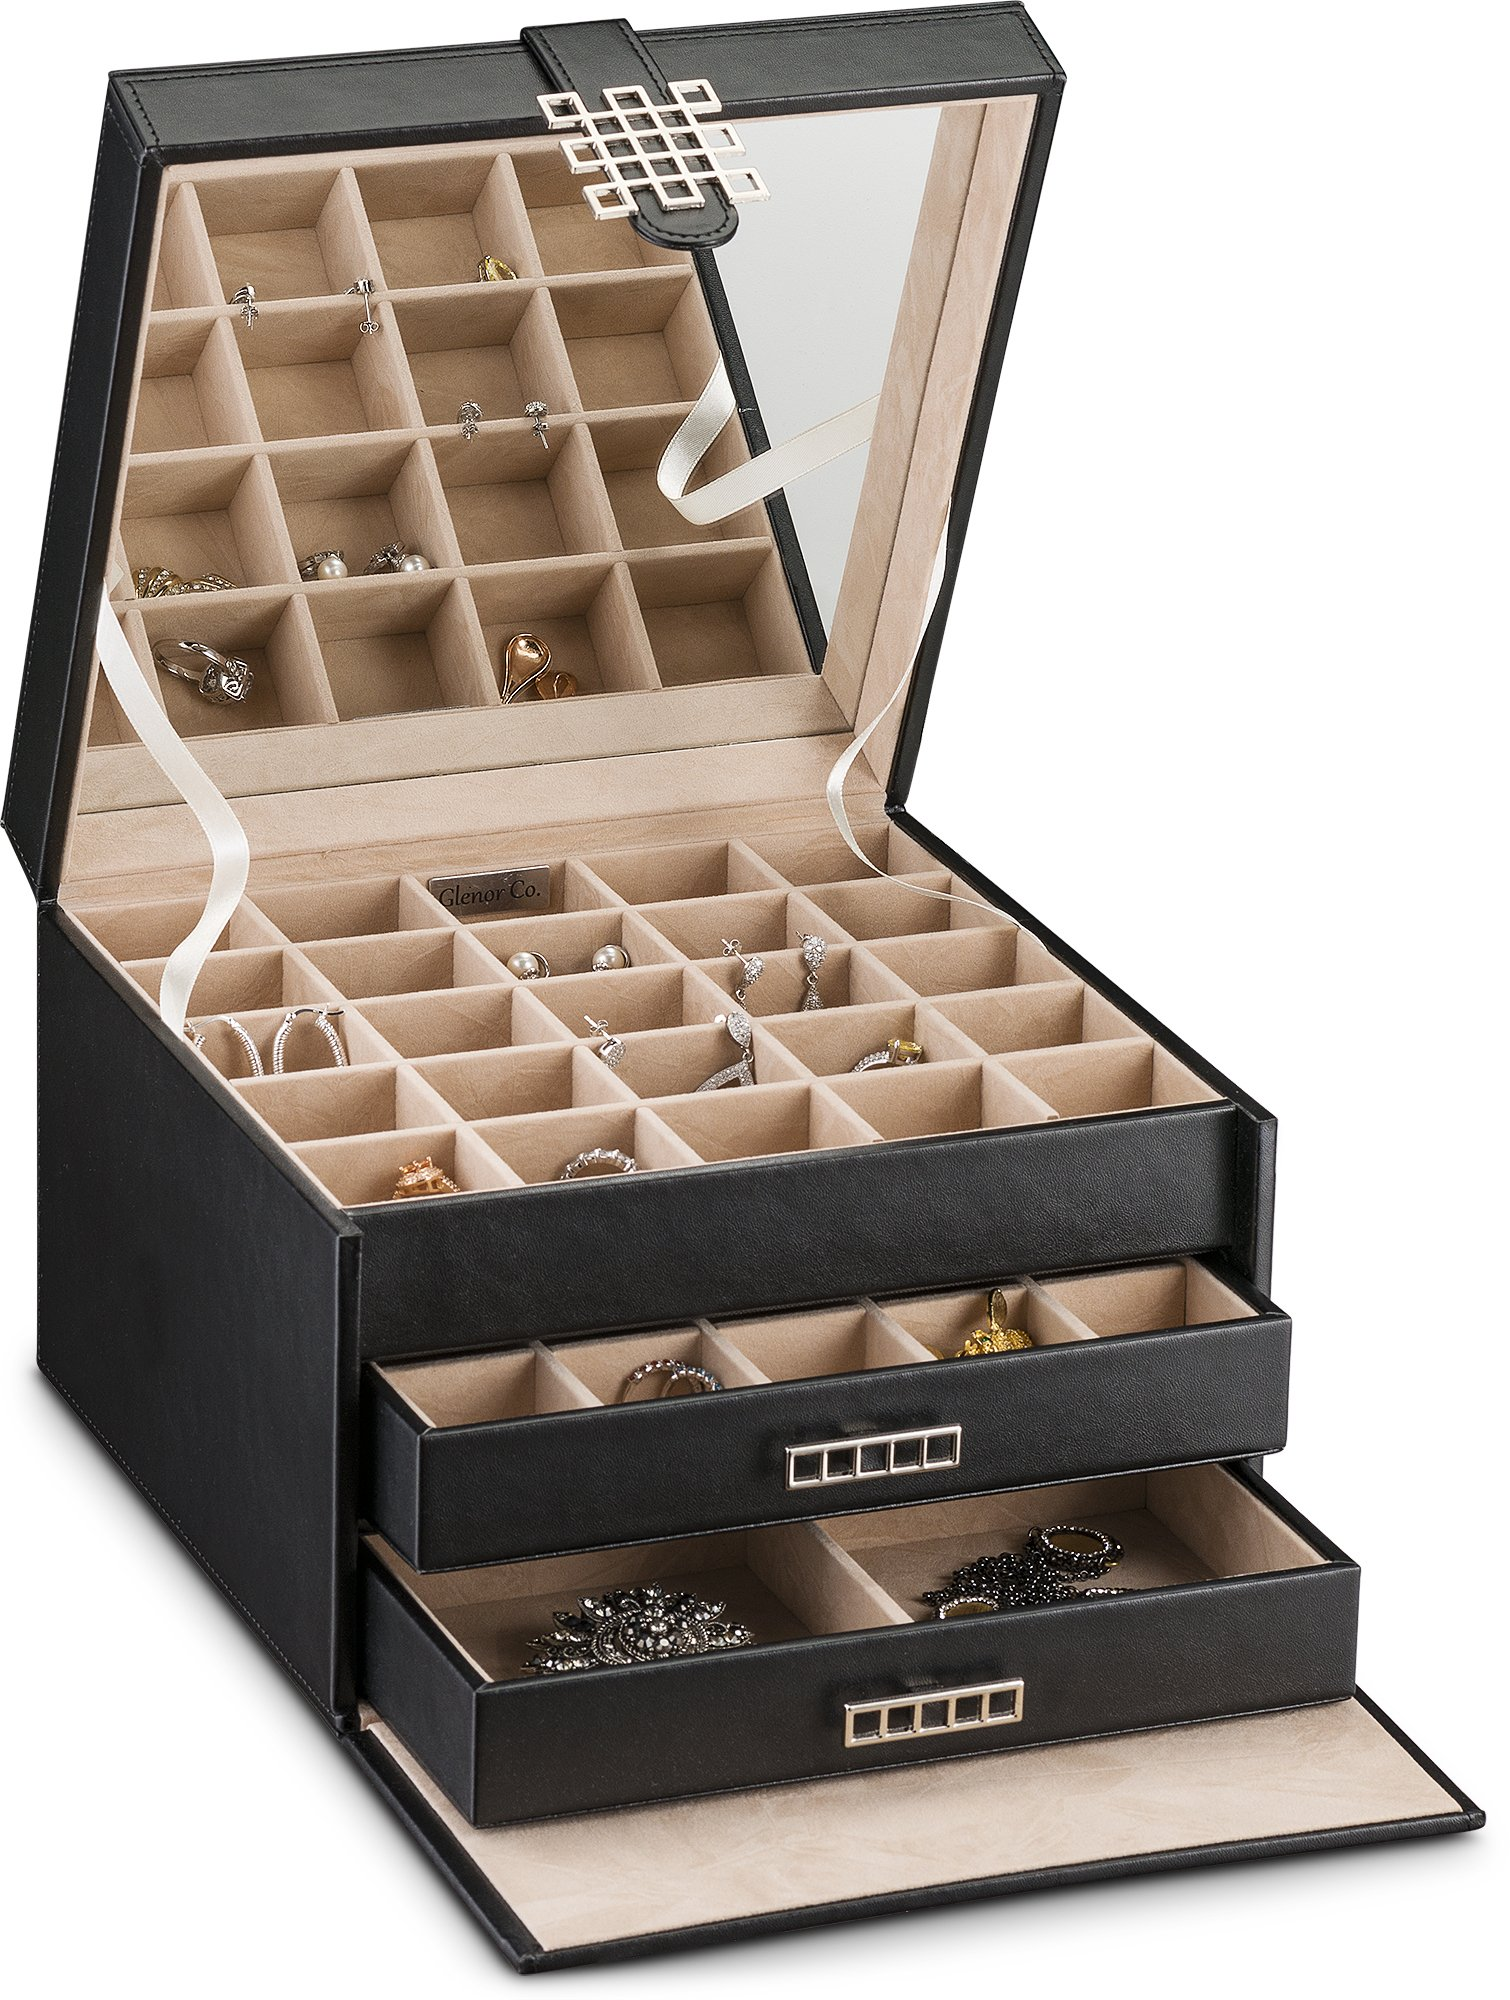 Glenor Co Earring Organizer Holder - 50 Small & 4 Large Slots Classic Jewelry box with Drawer & Modern Closure, Mirror, 3 Trays for All Sizes Earrings, Ring or Chain Storage - PU Leather Case - Black